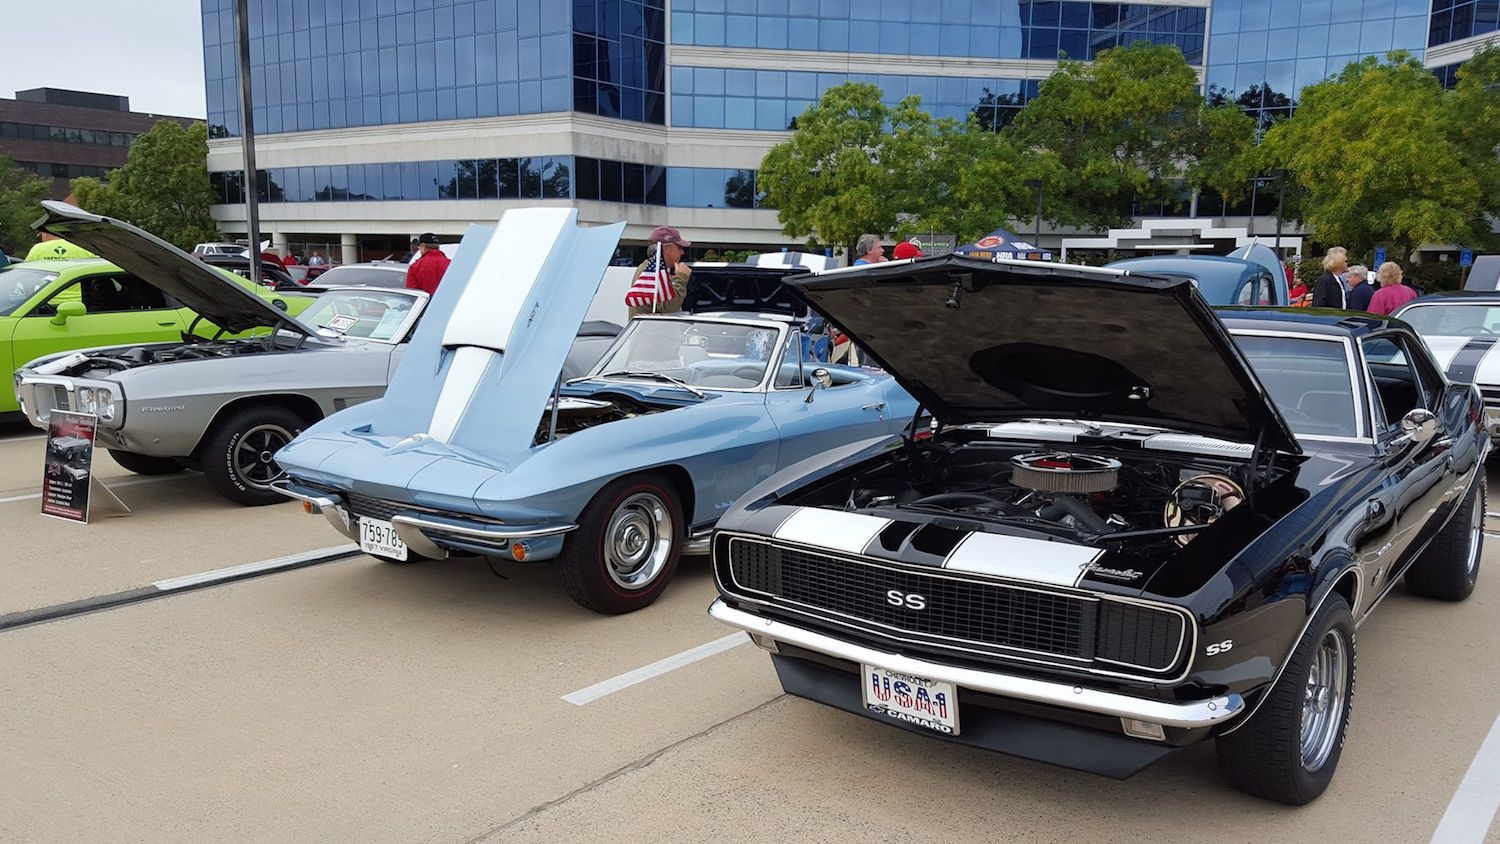 NRA Range to host second annual NRA Car & Truck Show Sept. 25